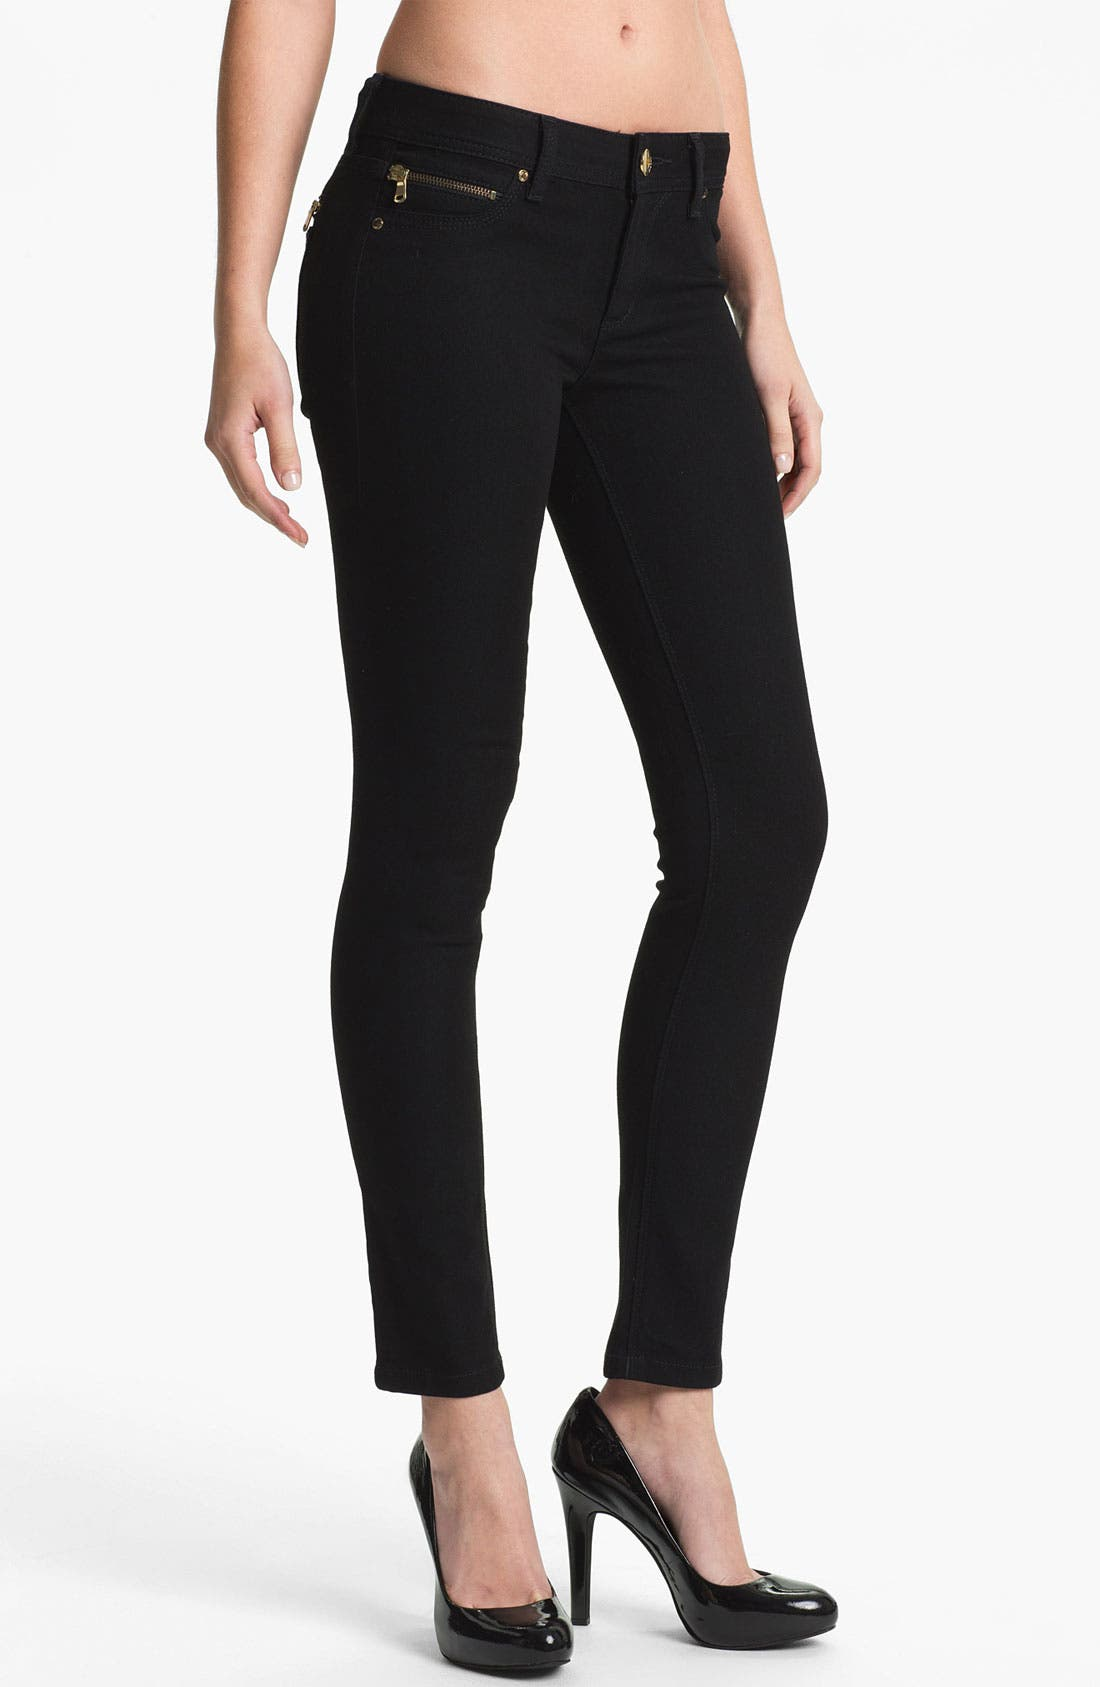 Main Image - DL1961 'Amanda' X-Fit Stretch Denim Zip Pocket Skinny Jeans (Lax)